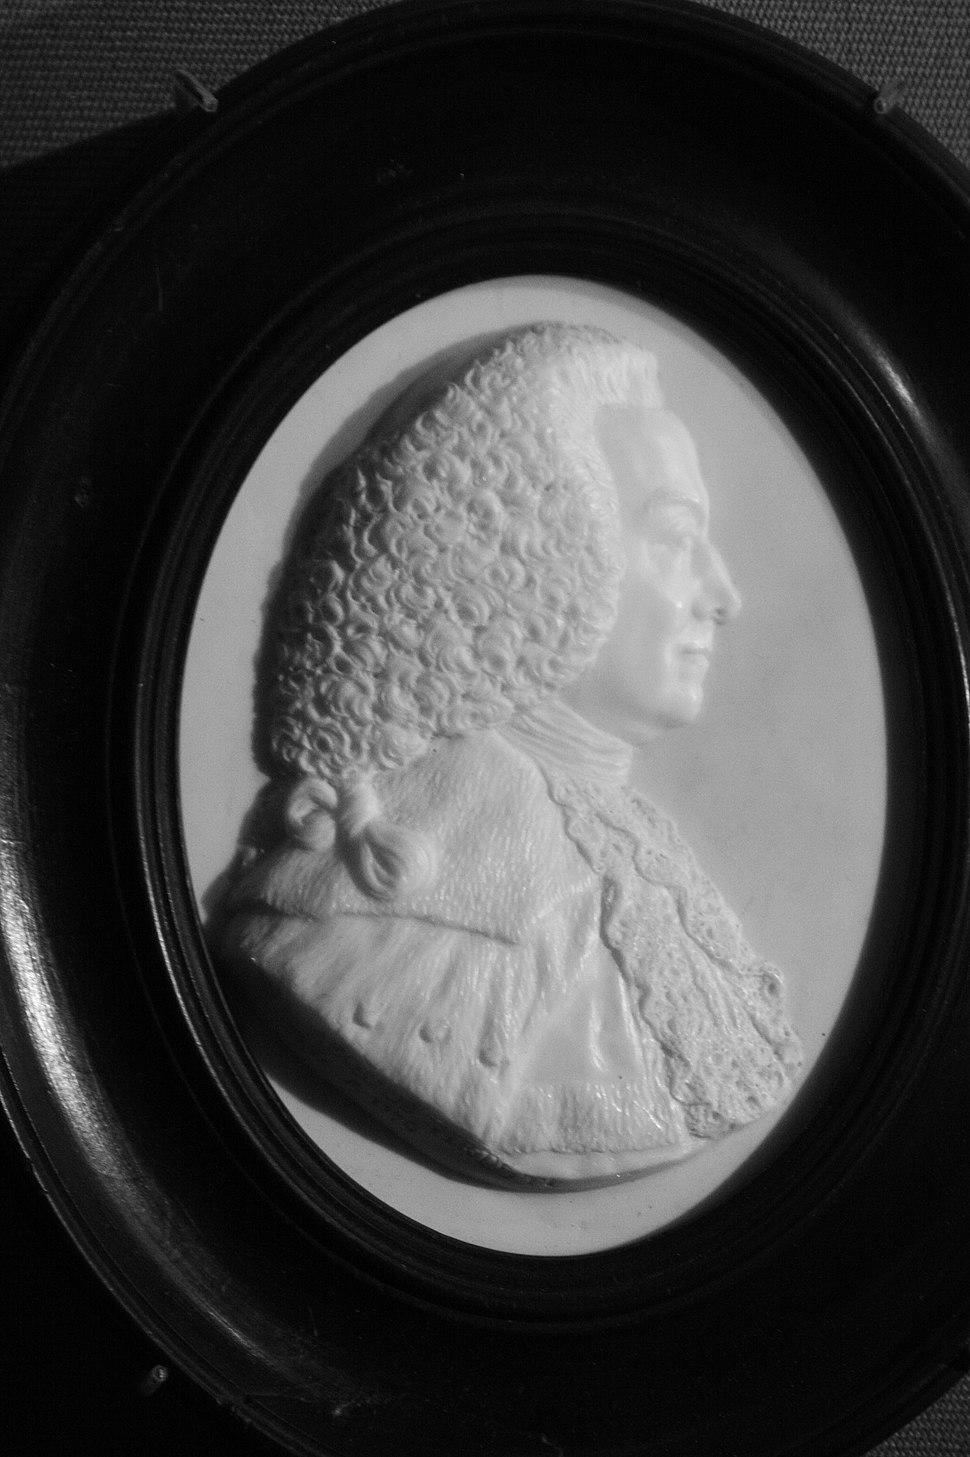 Cameo of William Murray, 1st Earl of Mansfield